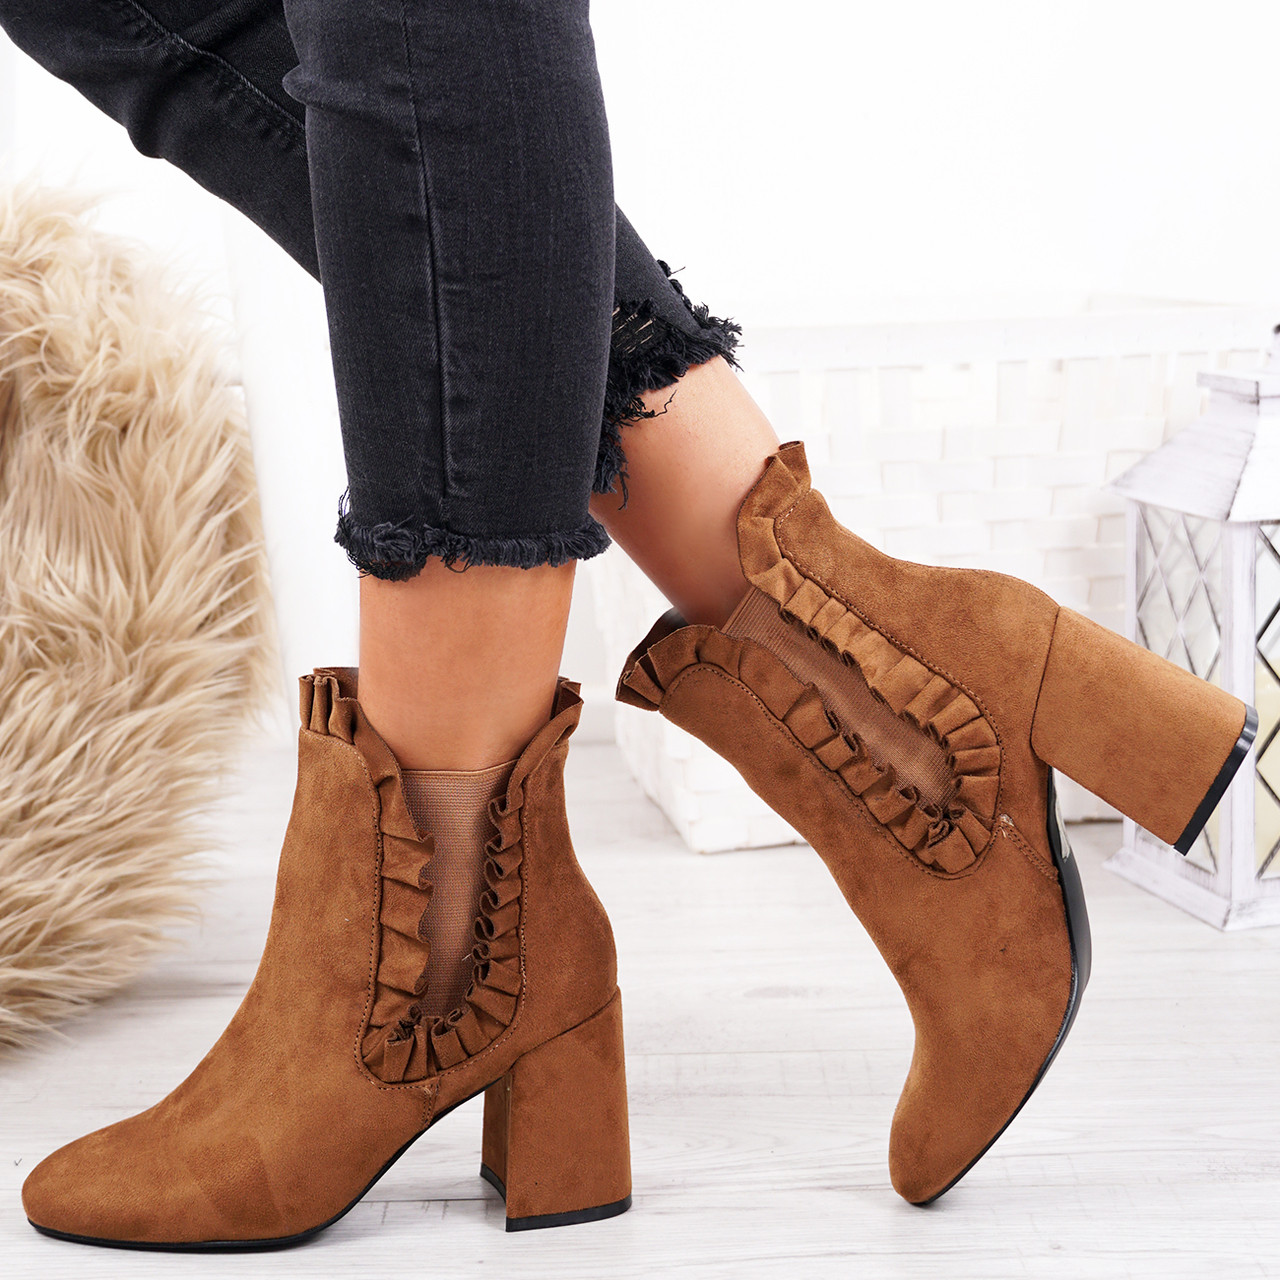 New Womens ladies high block heel casual smart winter chelsea ankle boots shoes